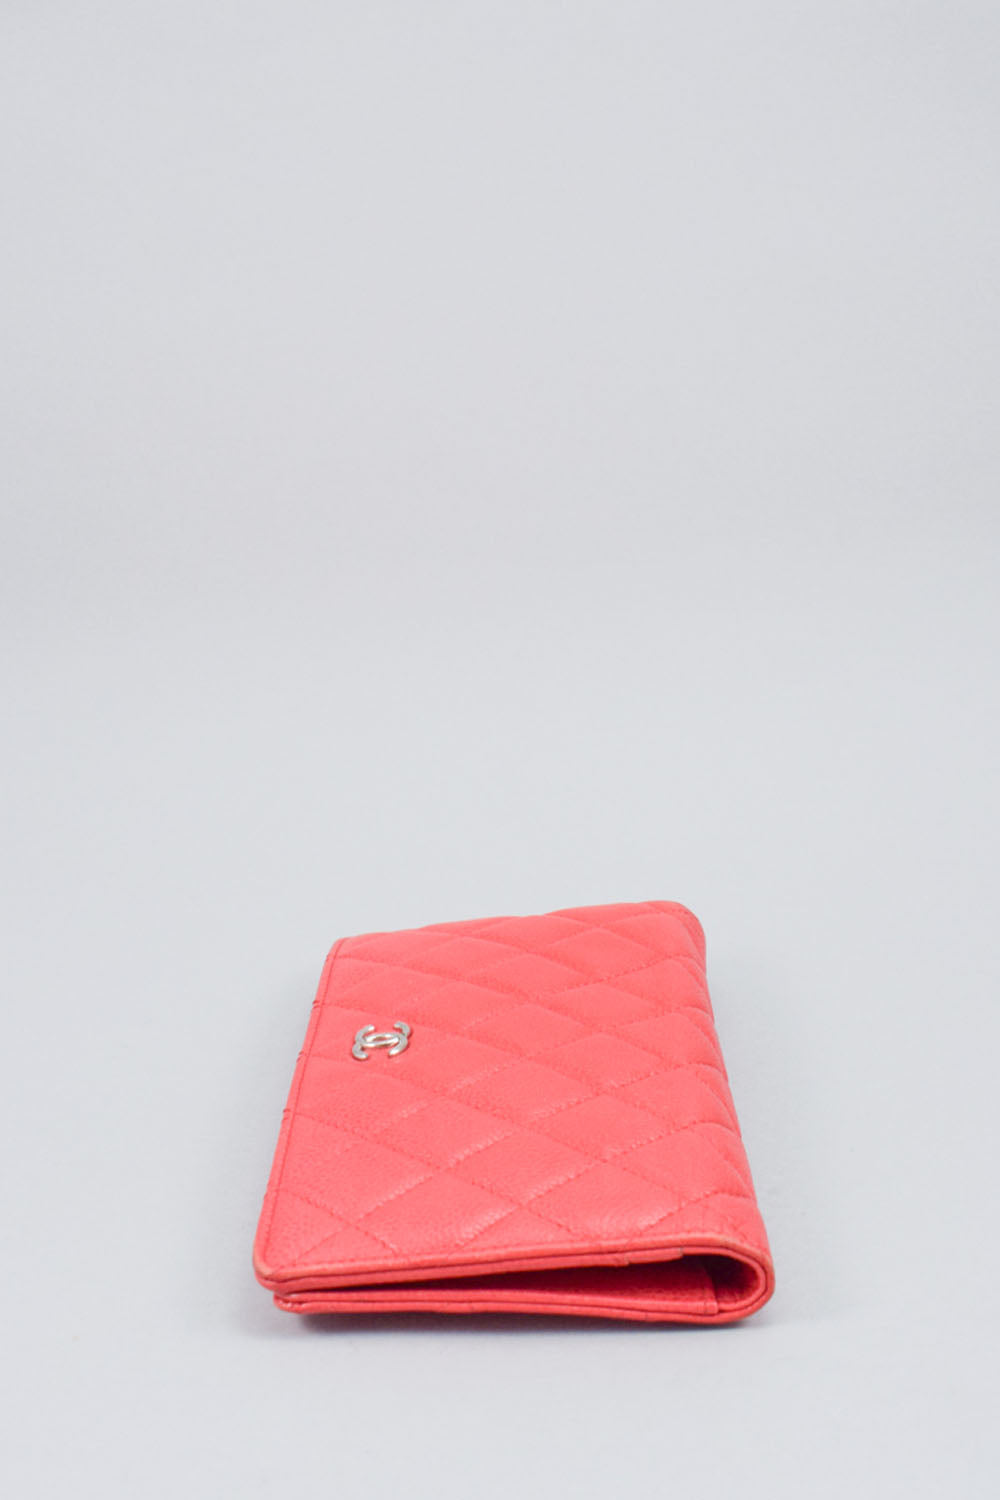 Chanel Red Caviar Long Wallet